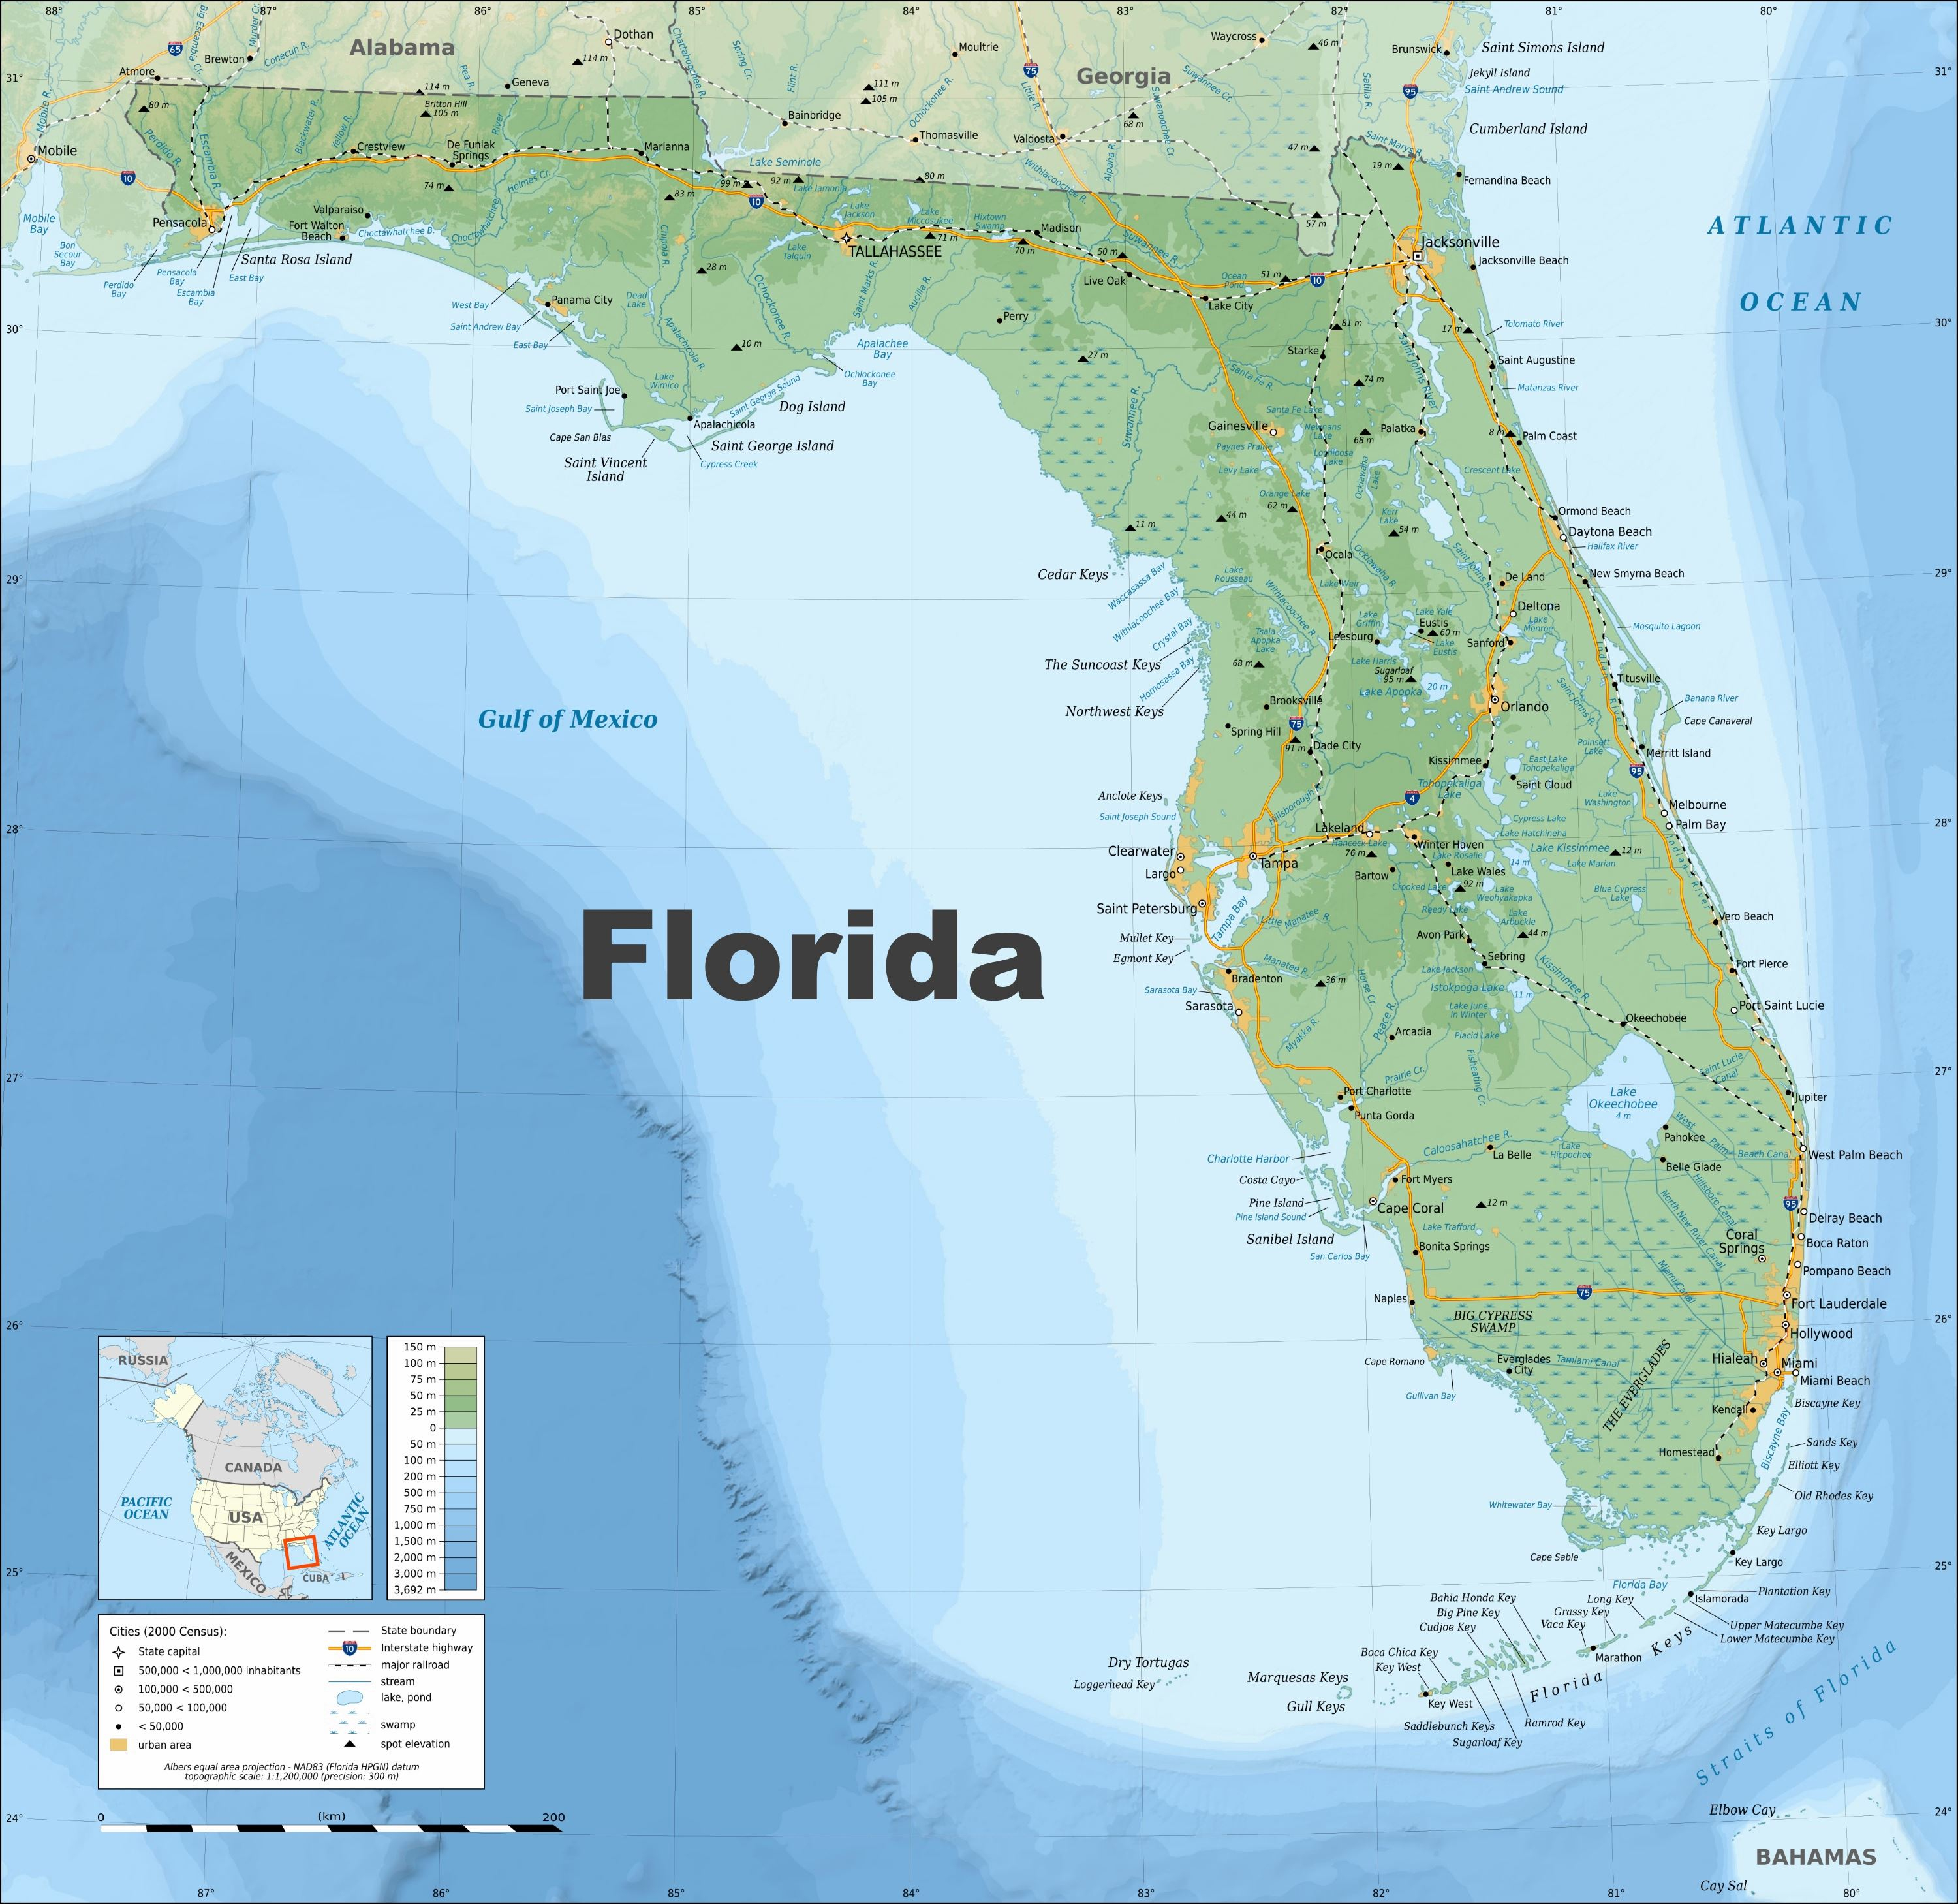 Large Florida Maps For Free Download And Print | High-Resolution And - Map Of Florida Vacation Spots